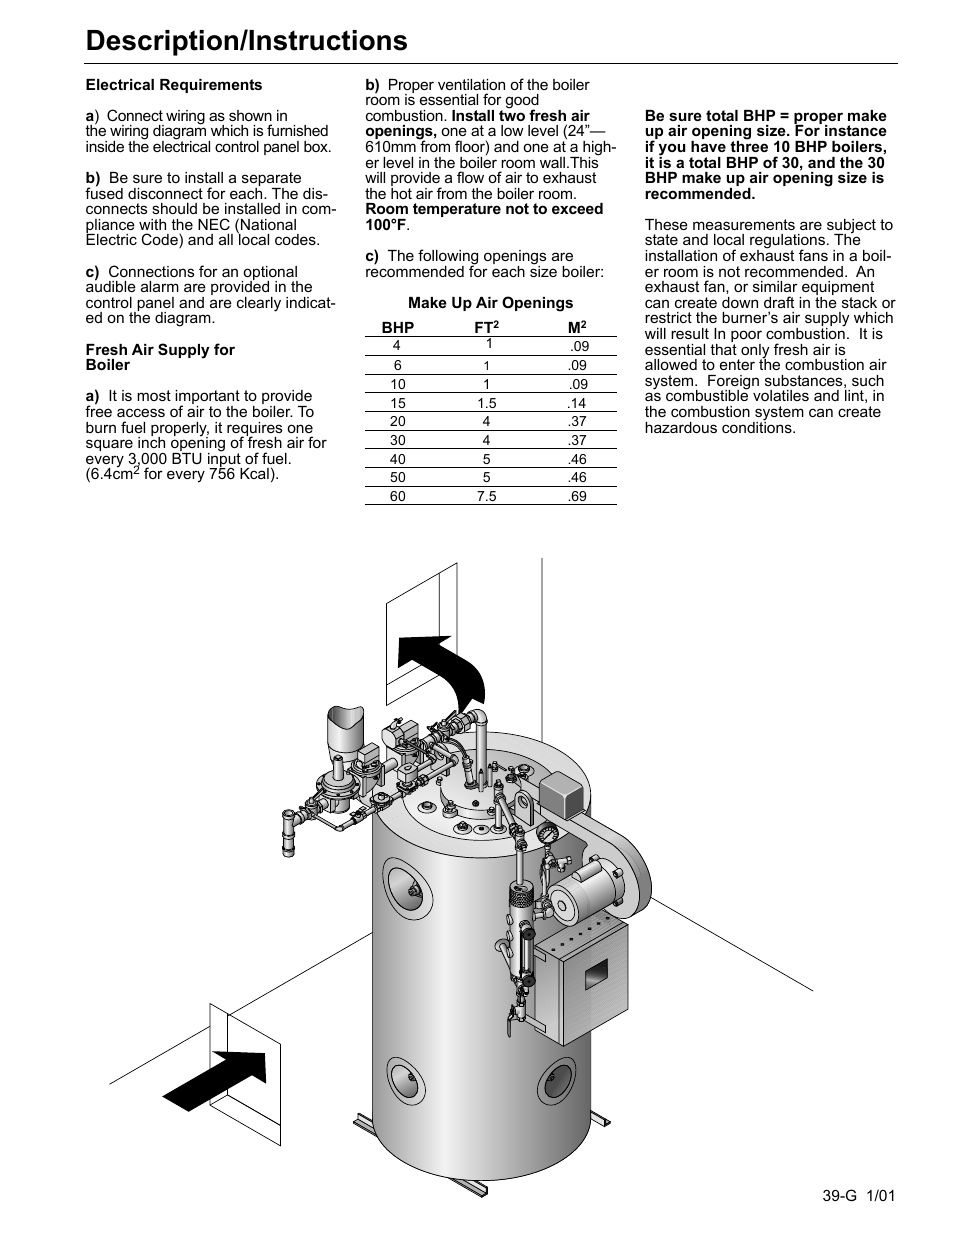 hight resolution of description instructions fulton edge icx or fb f vertical tubeless boilers steam gas fired user manual page 46 102